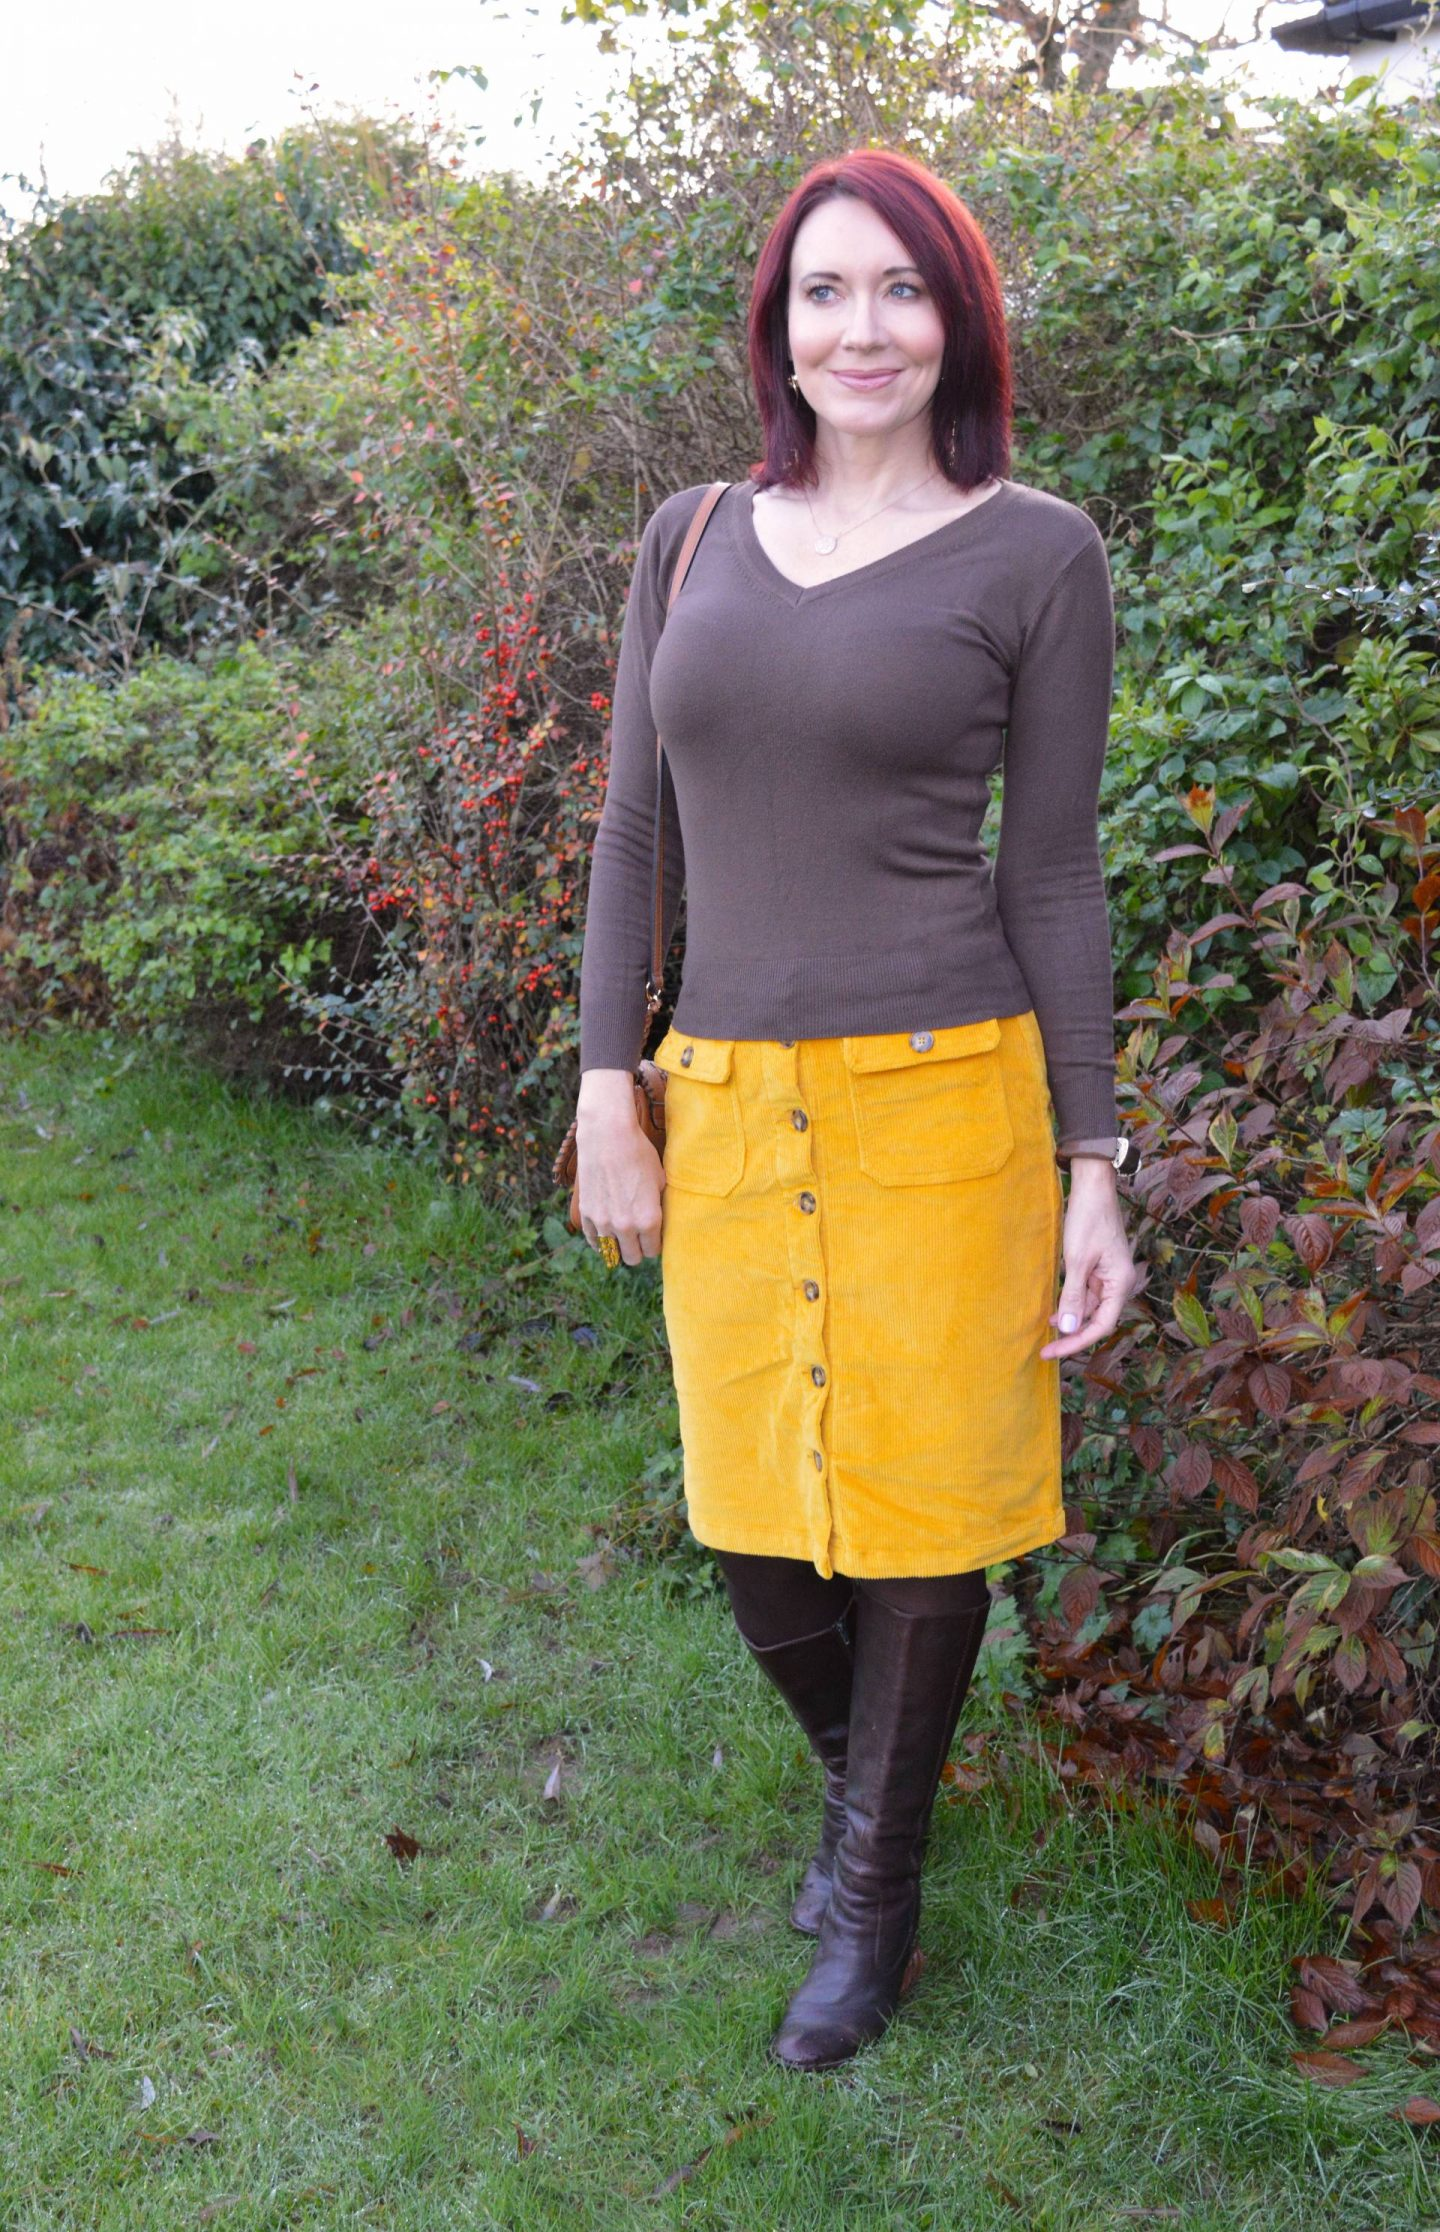 Bright Yellow Cord Skirt and Chocolate Brown jumper